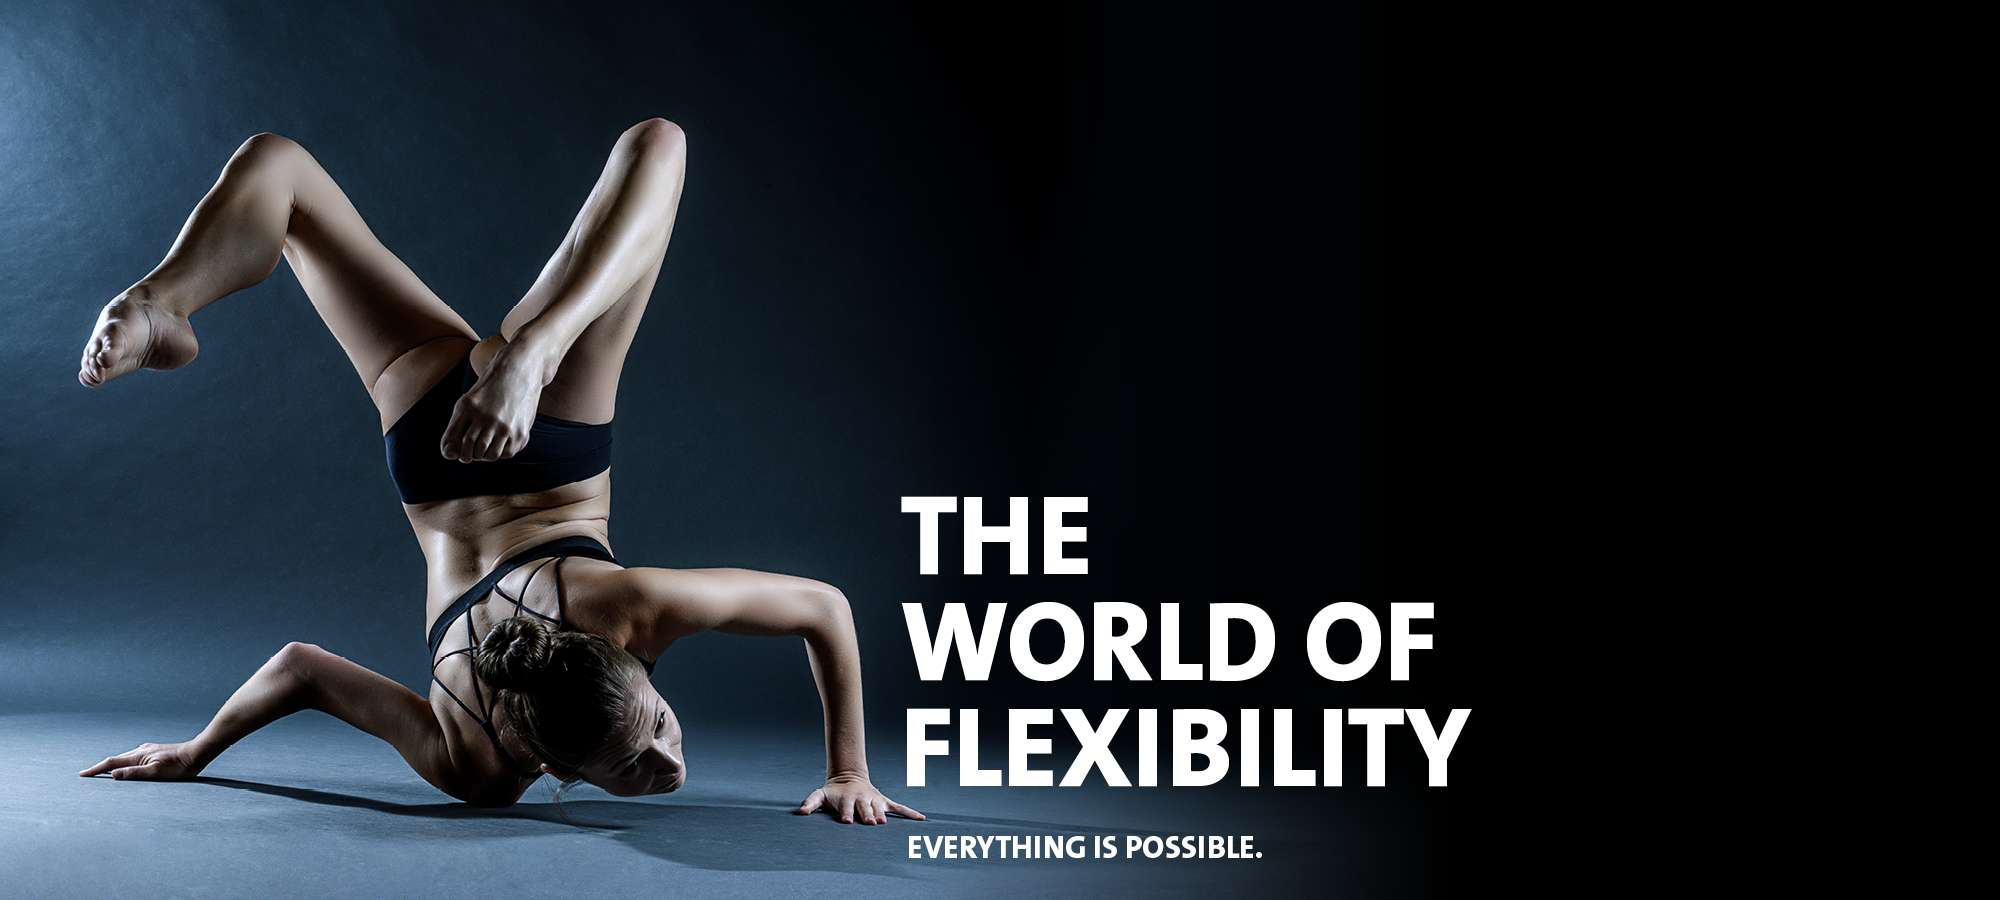 The world of flexibility